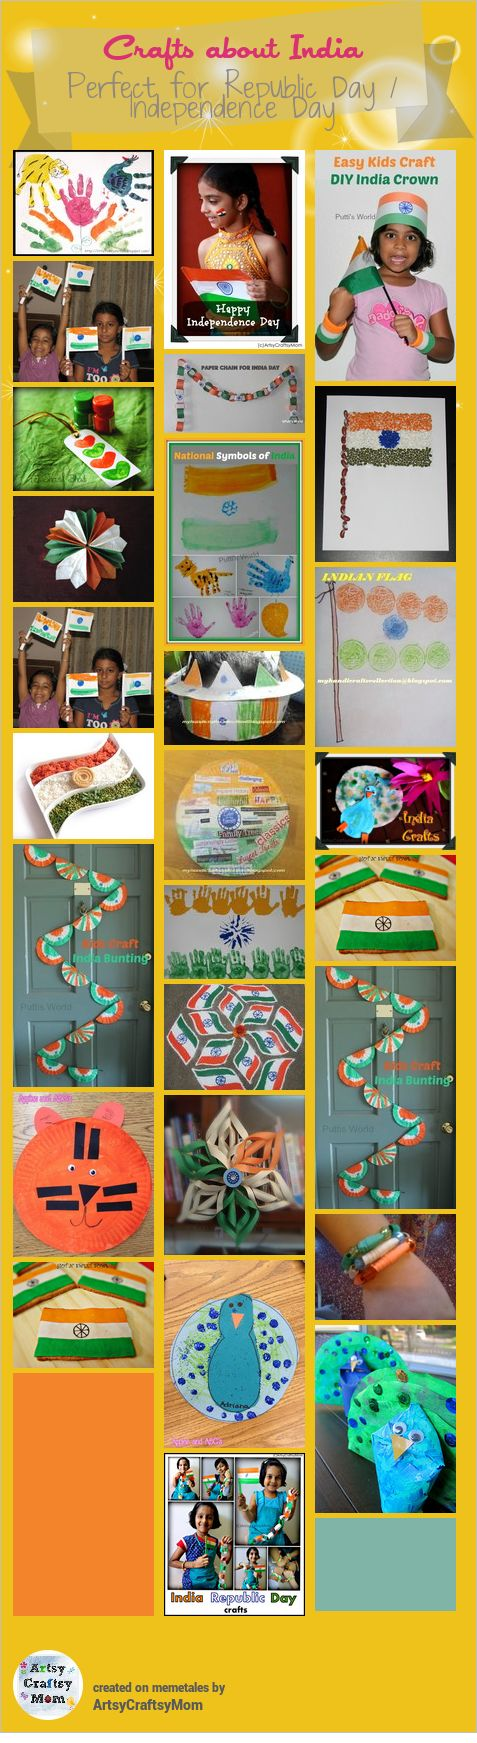 Crafts about India